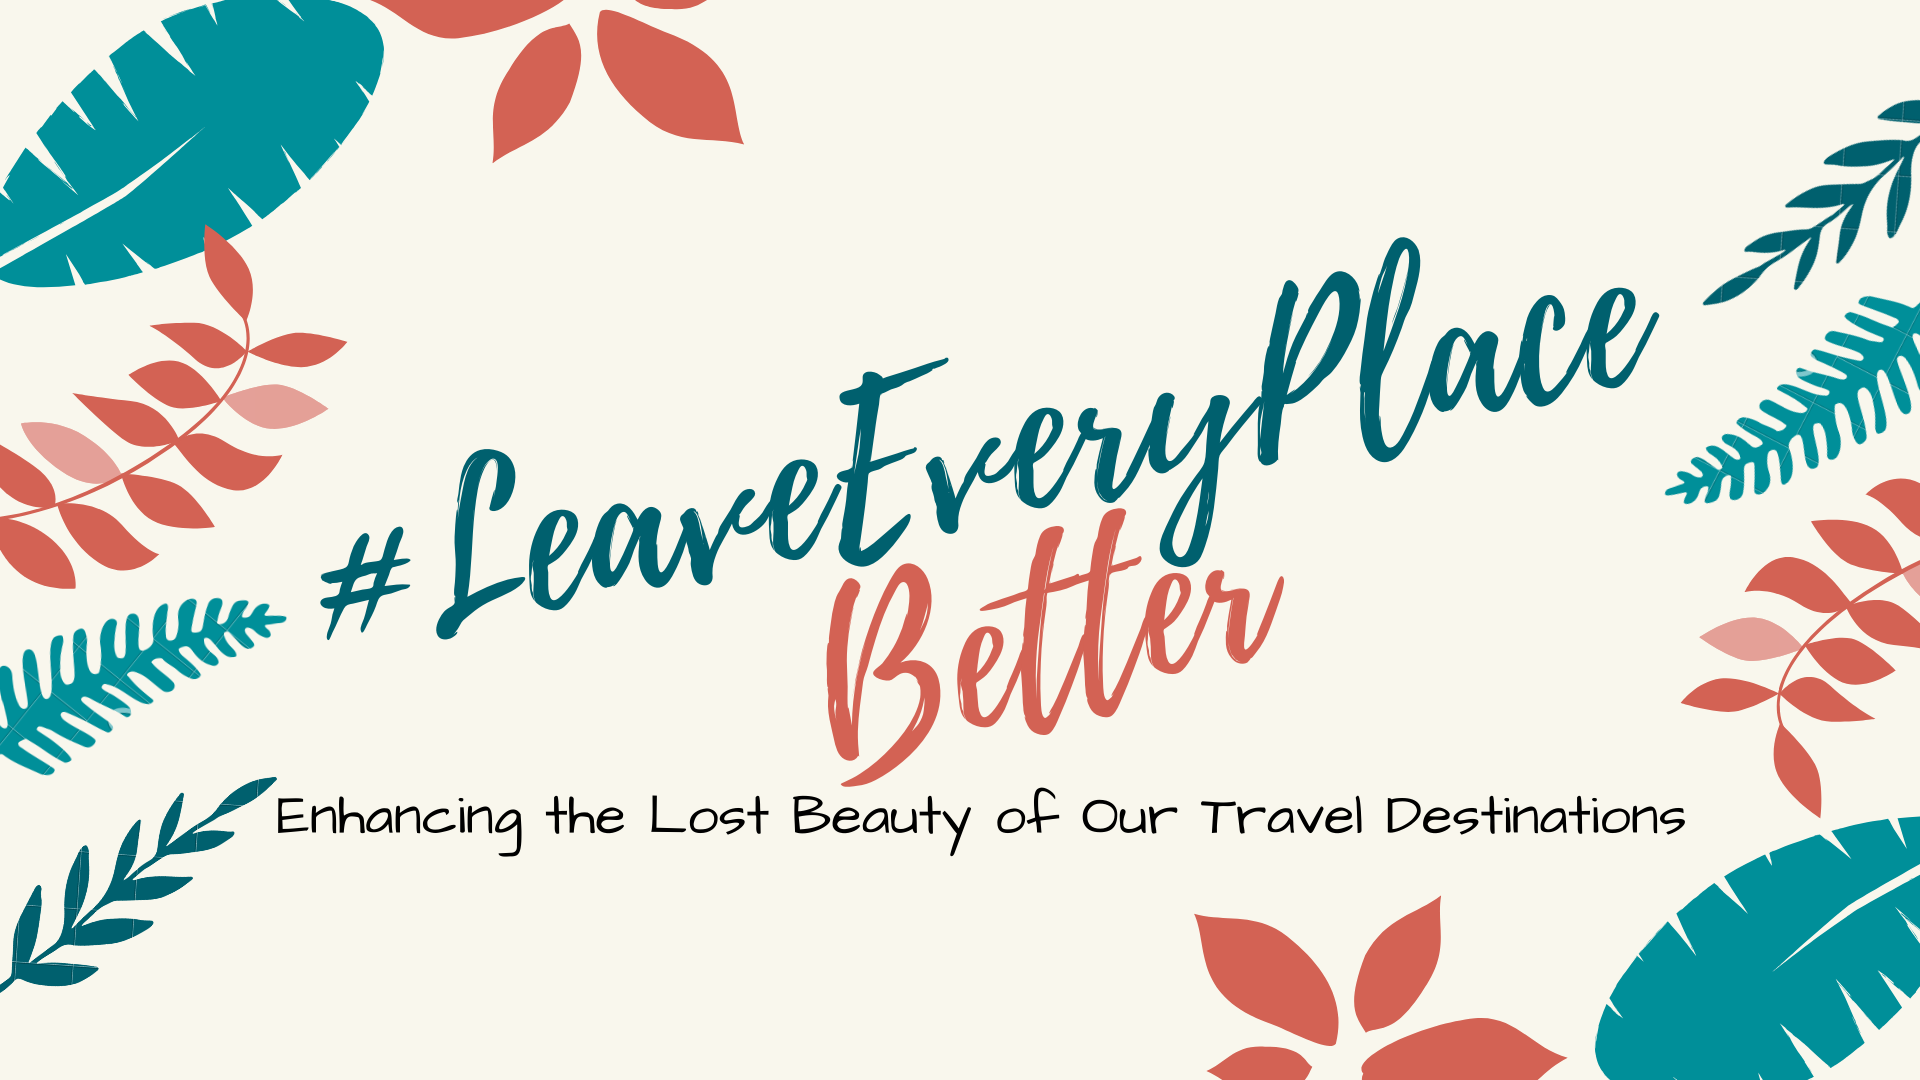 Enhancing the Lost Beauty of Our Travel Destinations